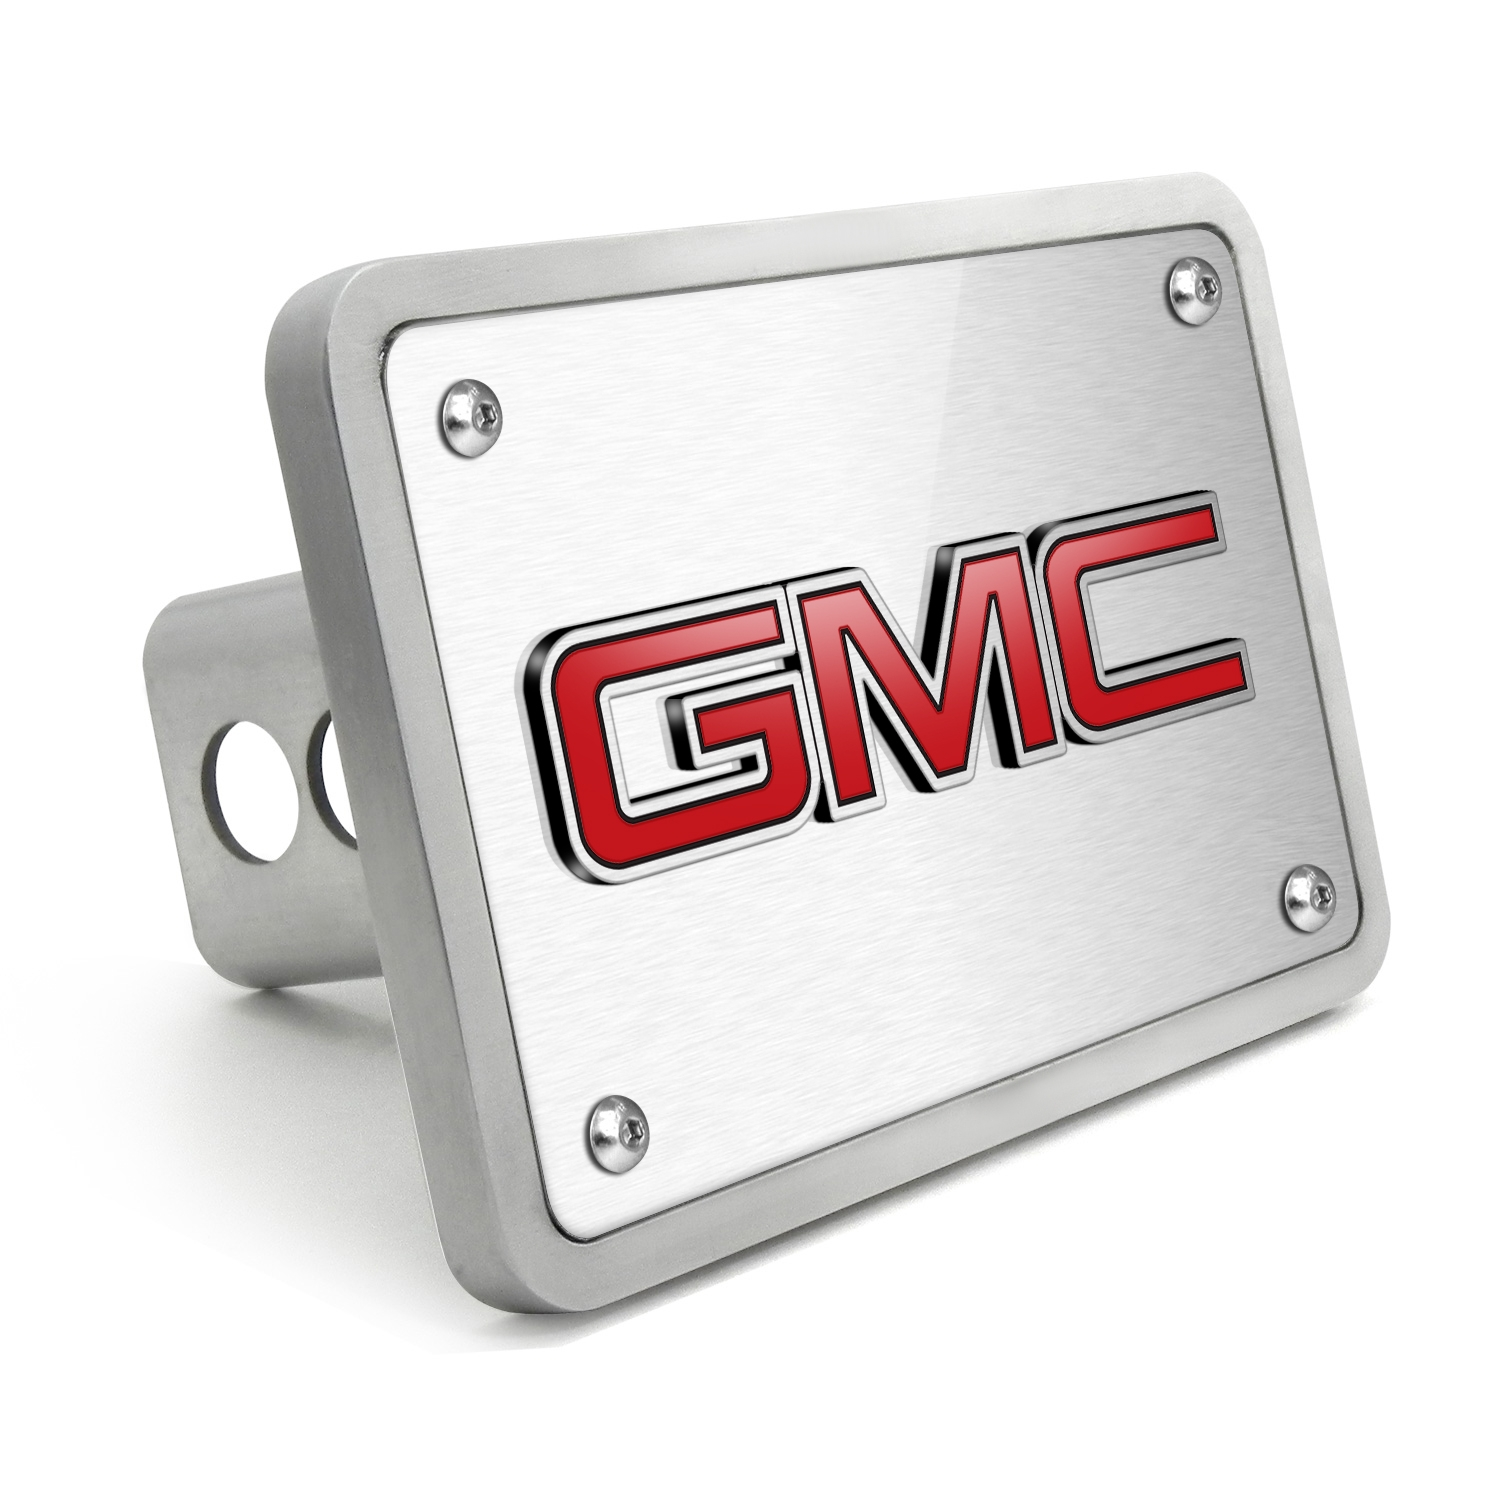 GMC 3D Logo in Red Inlay Brush Billet Aluminum 2 inch Tow Hitch Cover